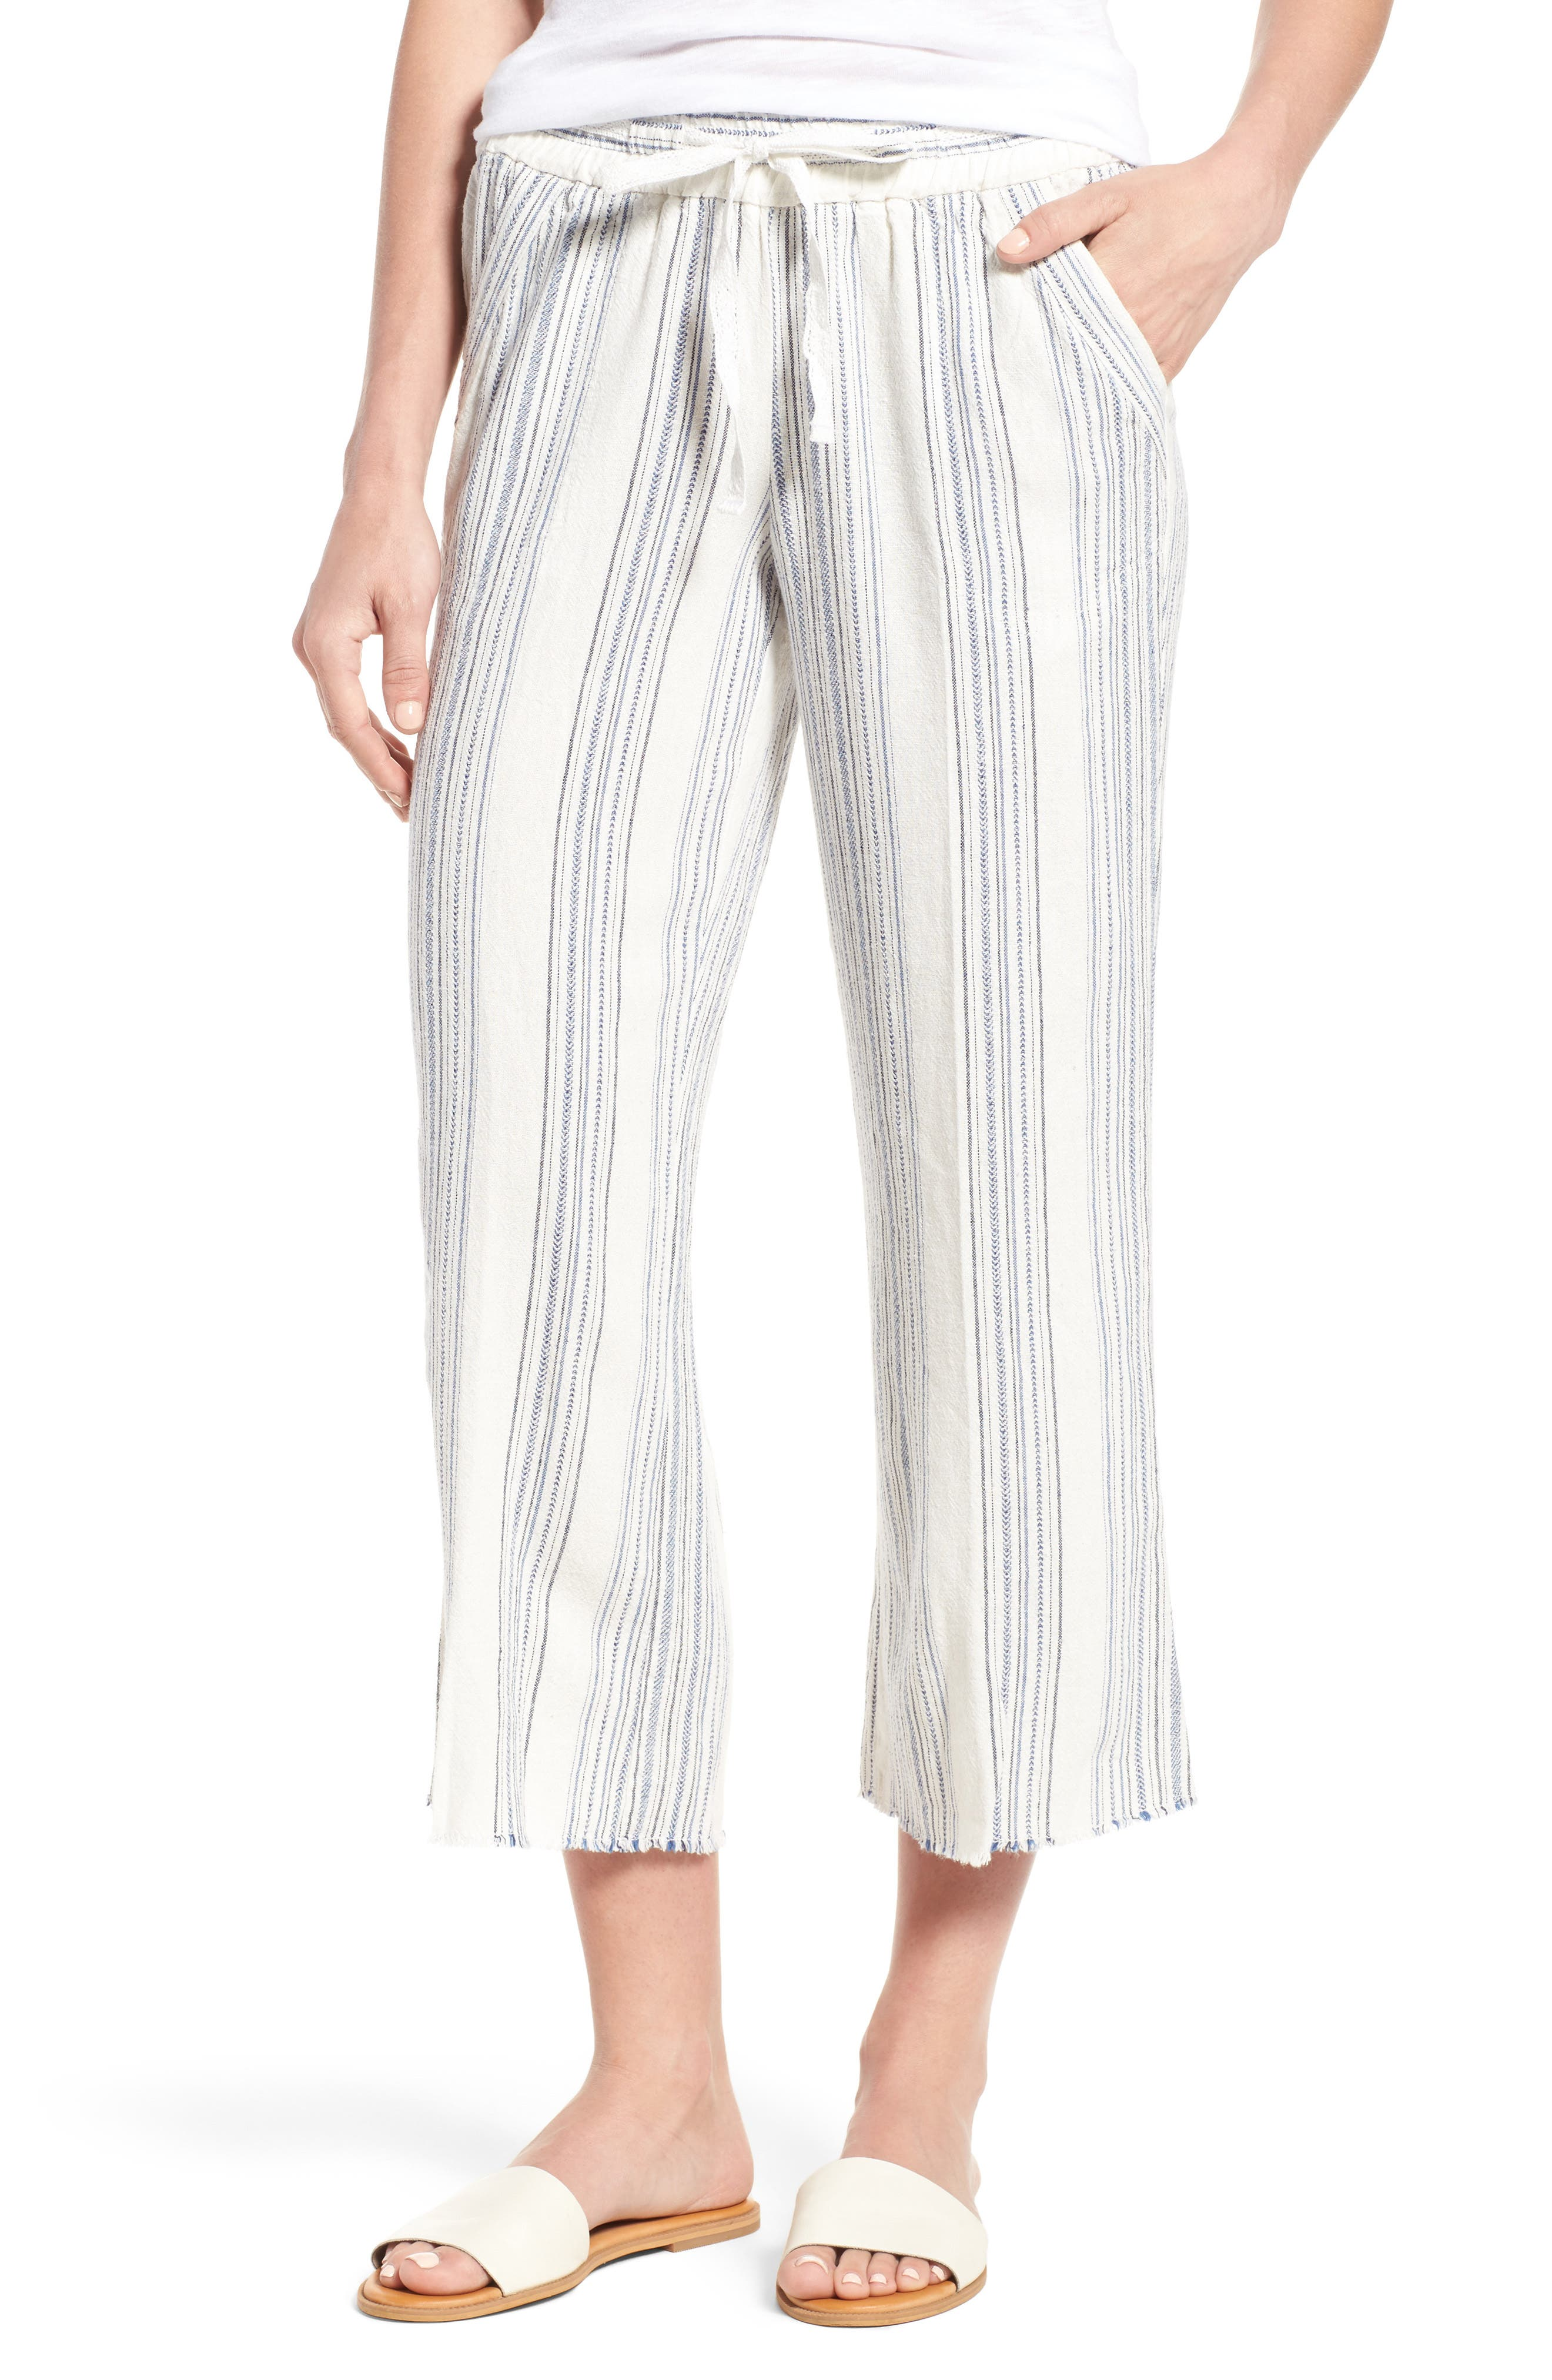 Wit & Wisdom Drawstring Stripe Crop Sailor Pants (Regular & Petite) (Nordstrom Exclusive)